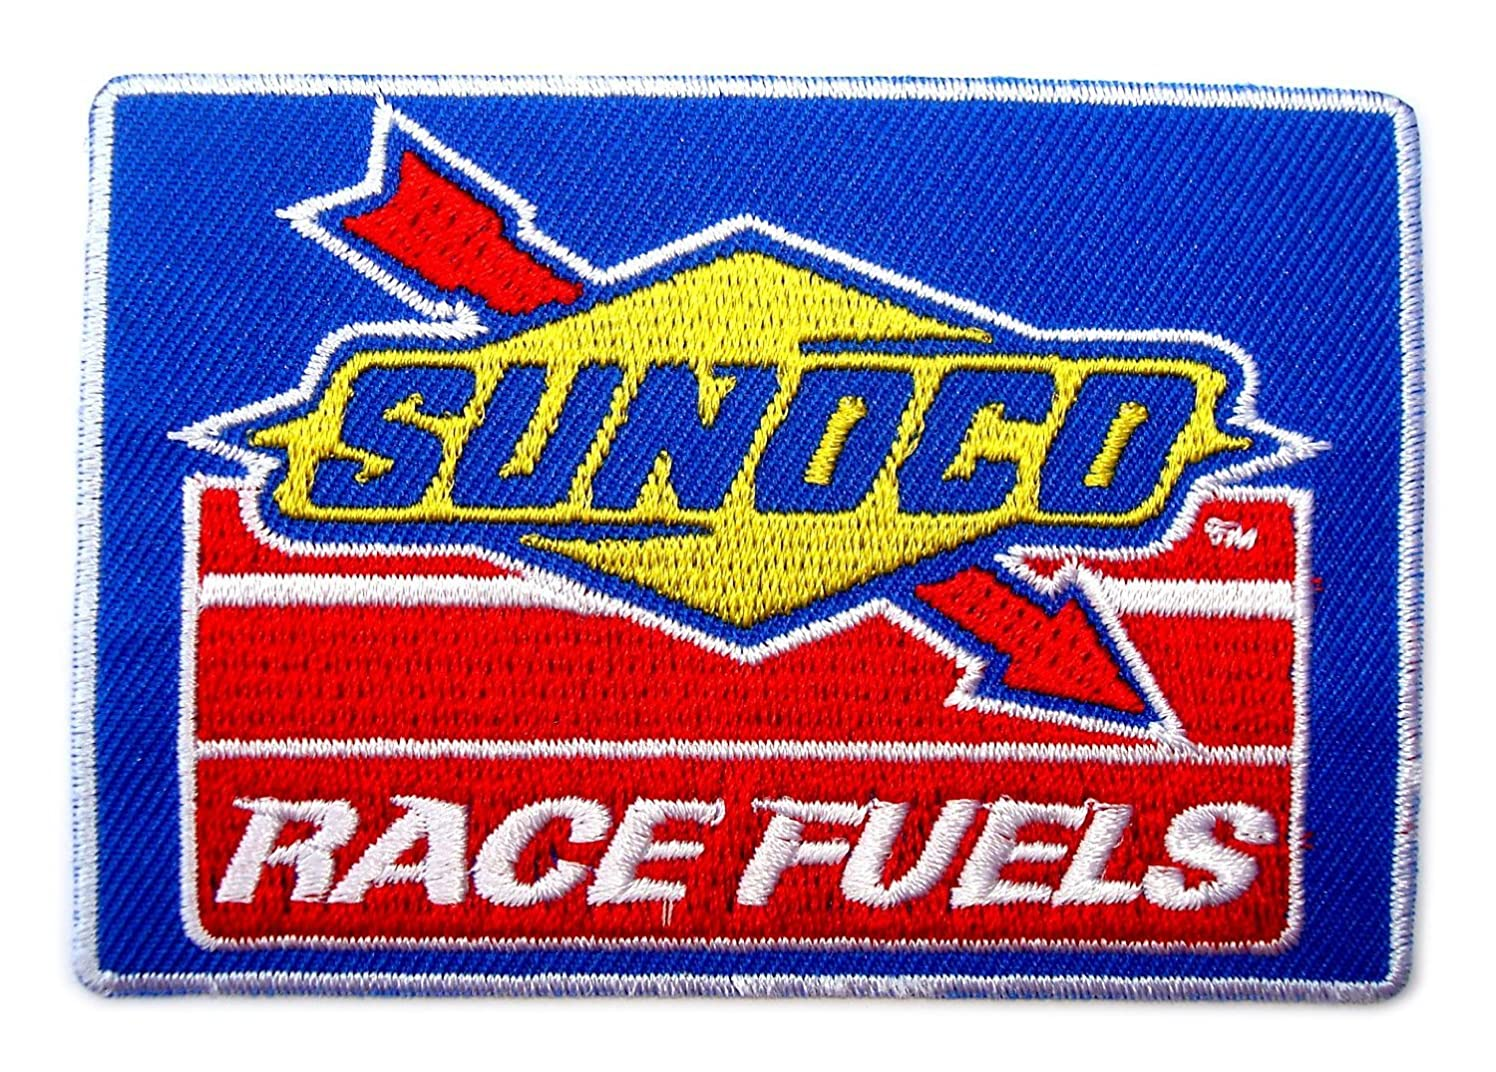 Sunoco Race Fuels NHRA Drag NASCAR Racing Clothing Patch Sew Iron on Logo Embroidered Badge Sign Emblem Costume BY Dreamhigh_skyland